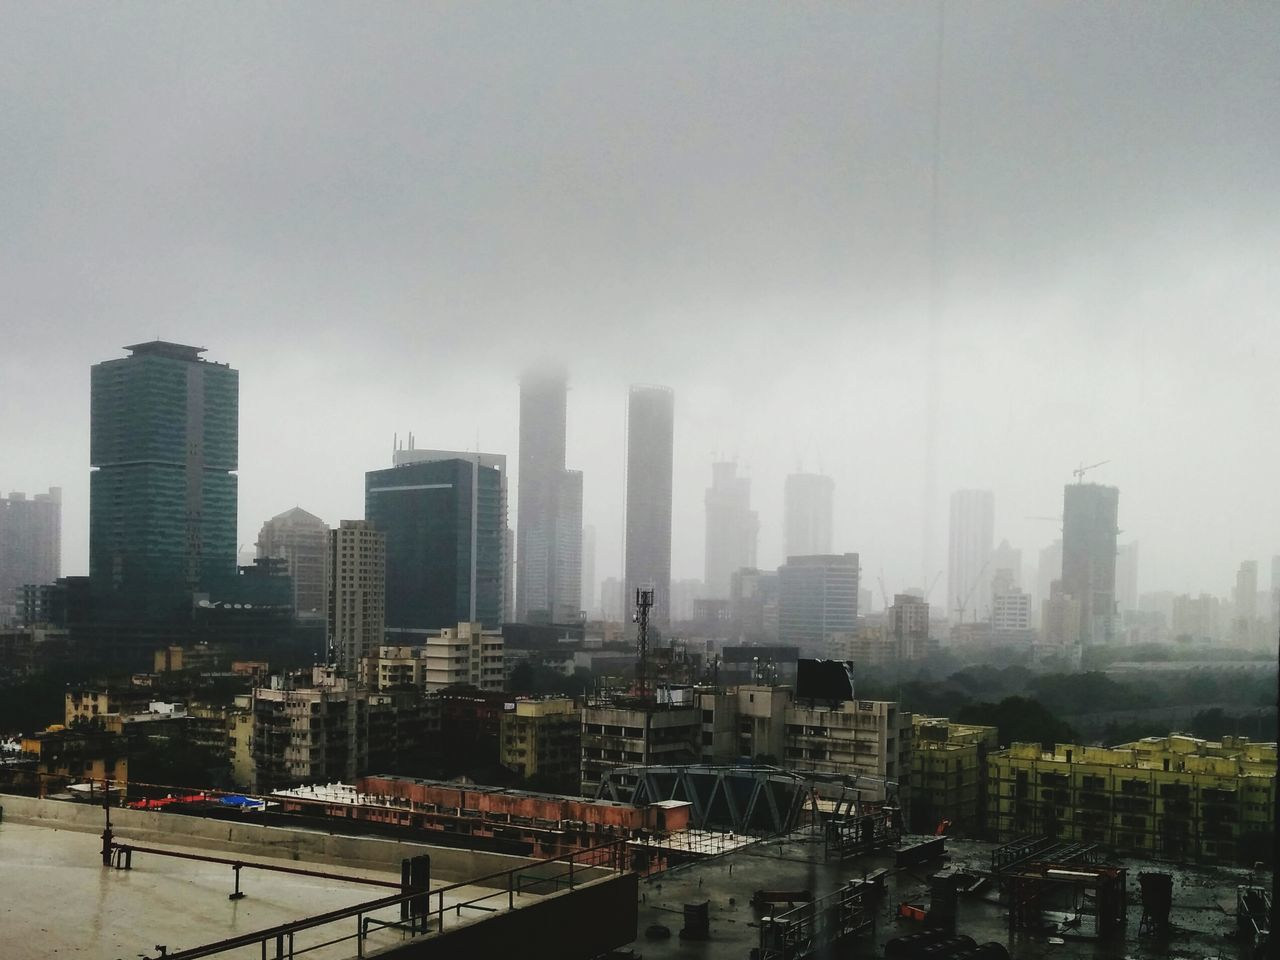 MumbaiDiaries Heavy Rain SkyFullofClouds Getting Dark